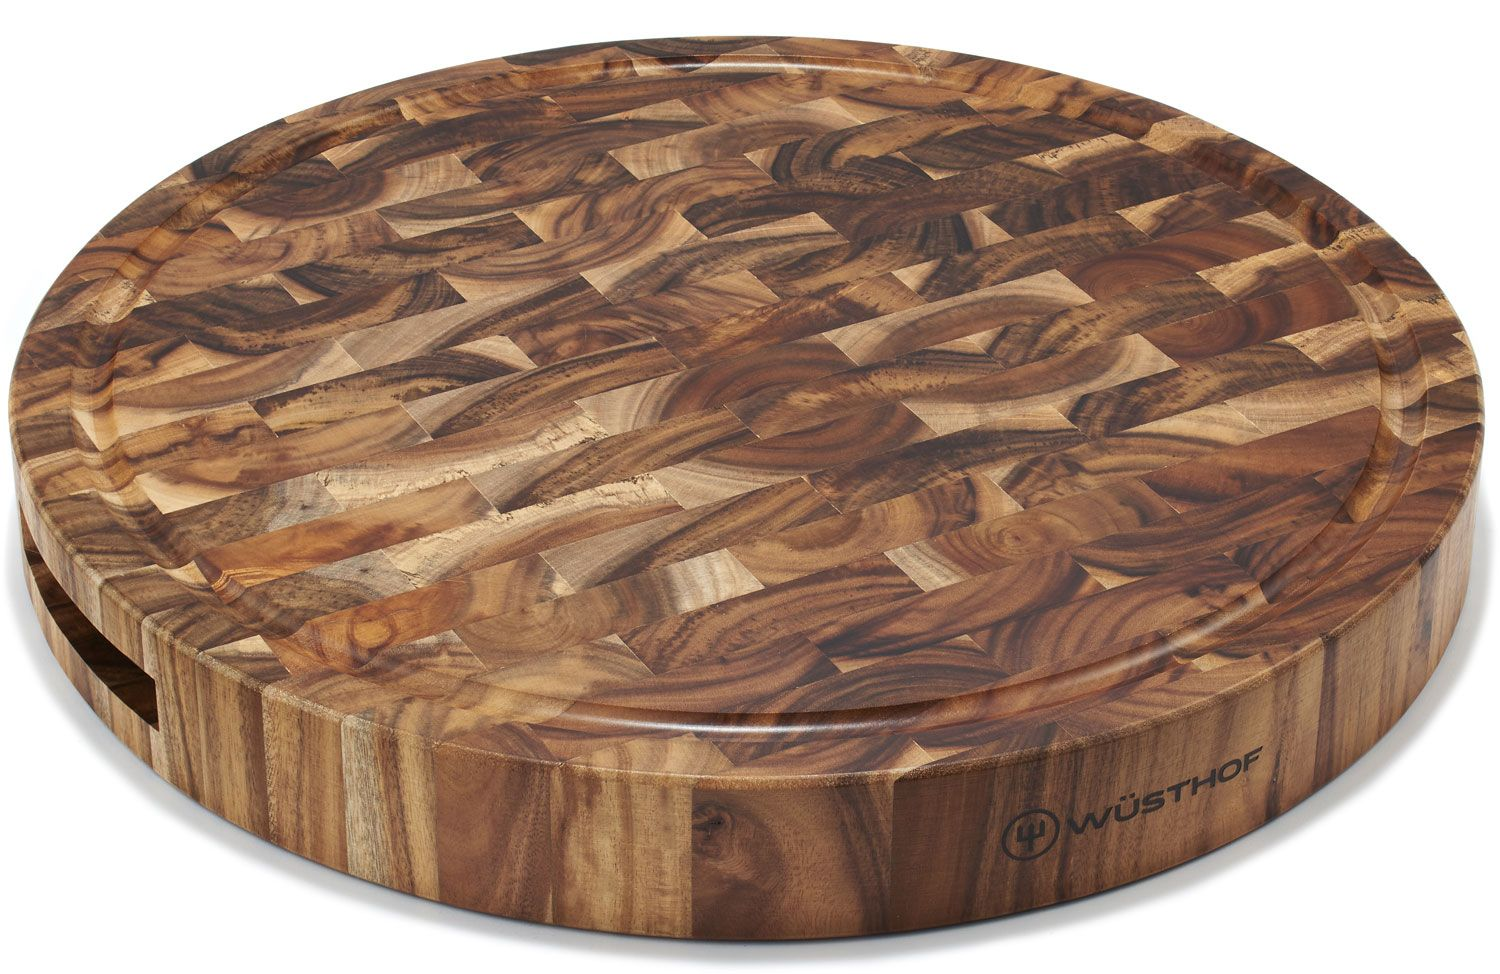 Wusthof Round Acacia End-Grain Chopping Block / Cutting Board 15 inch dia x 1.75 inch